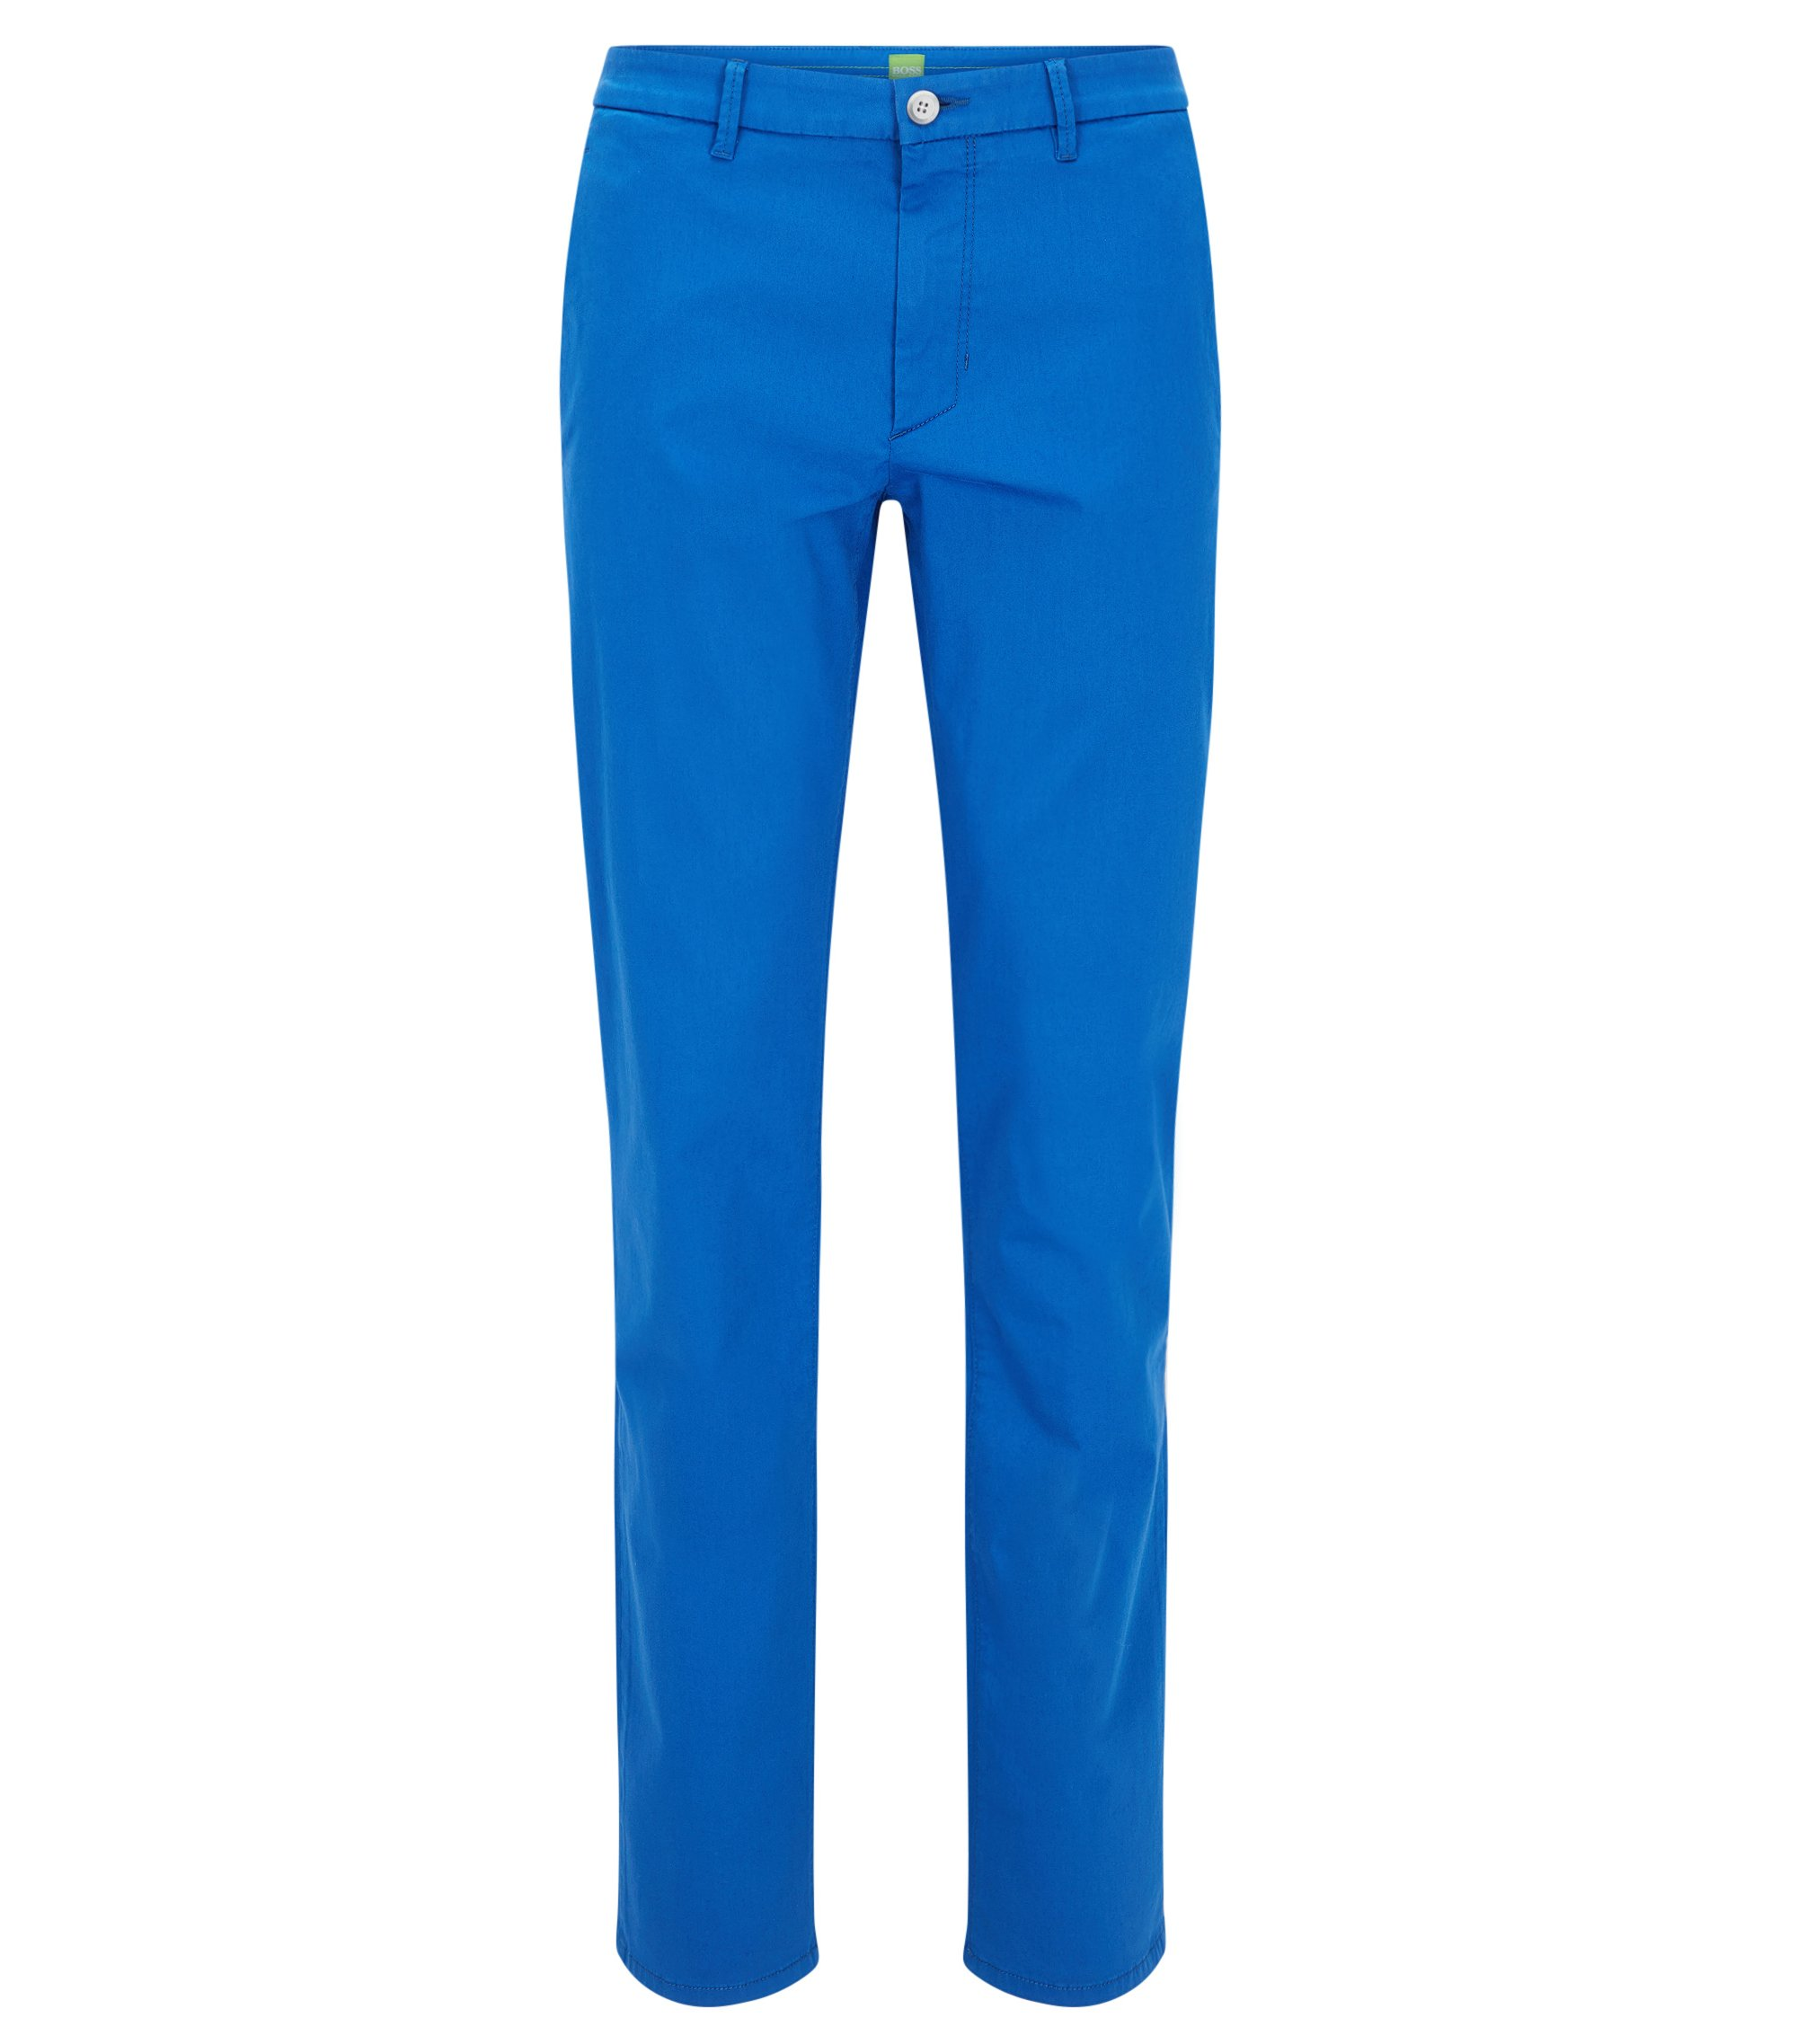 Chino Slim Fit en coton mélangé stretch à la finition satinée, Bleu